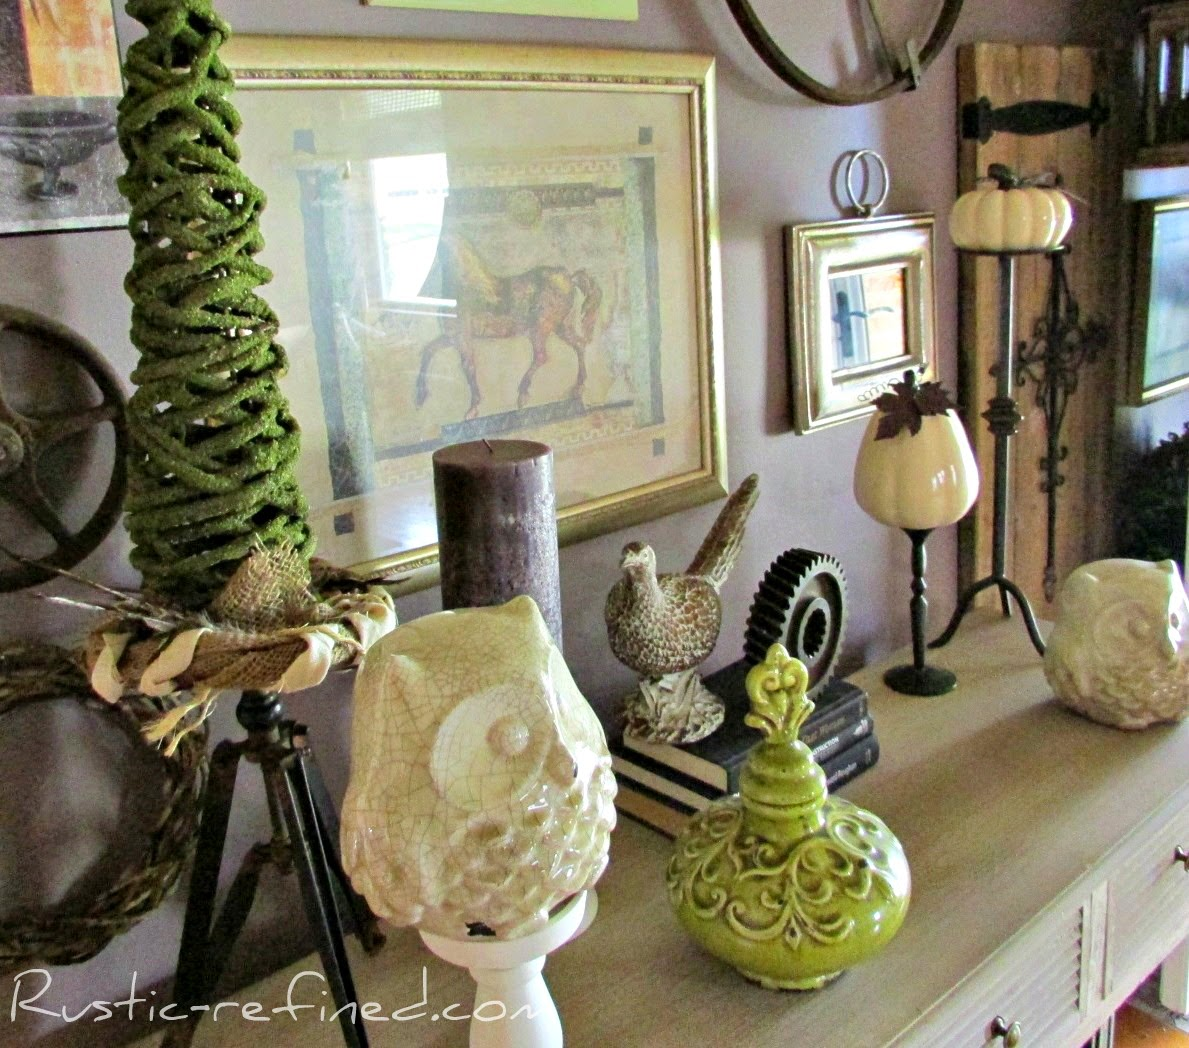 Fall Decor in the Entryway & Living Room @ Rustic-refined.com